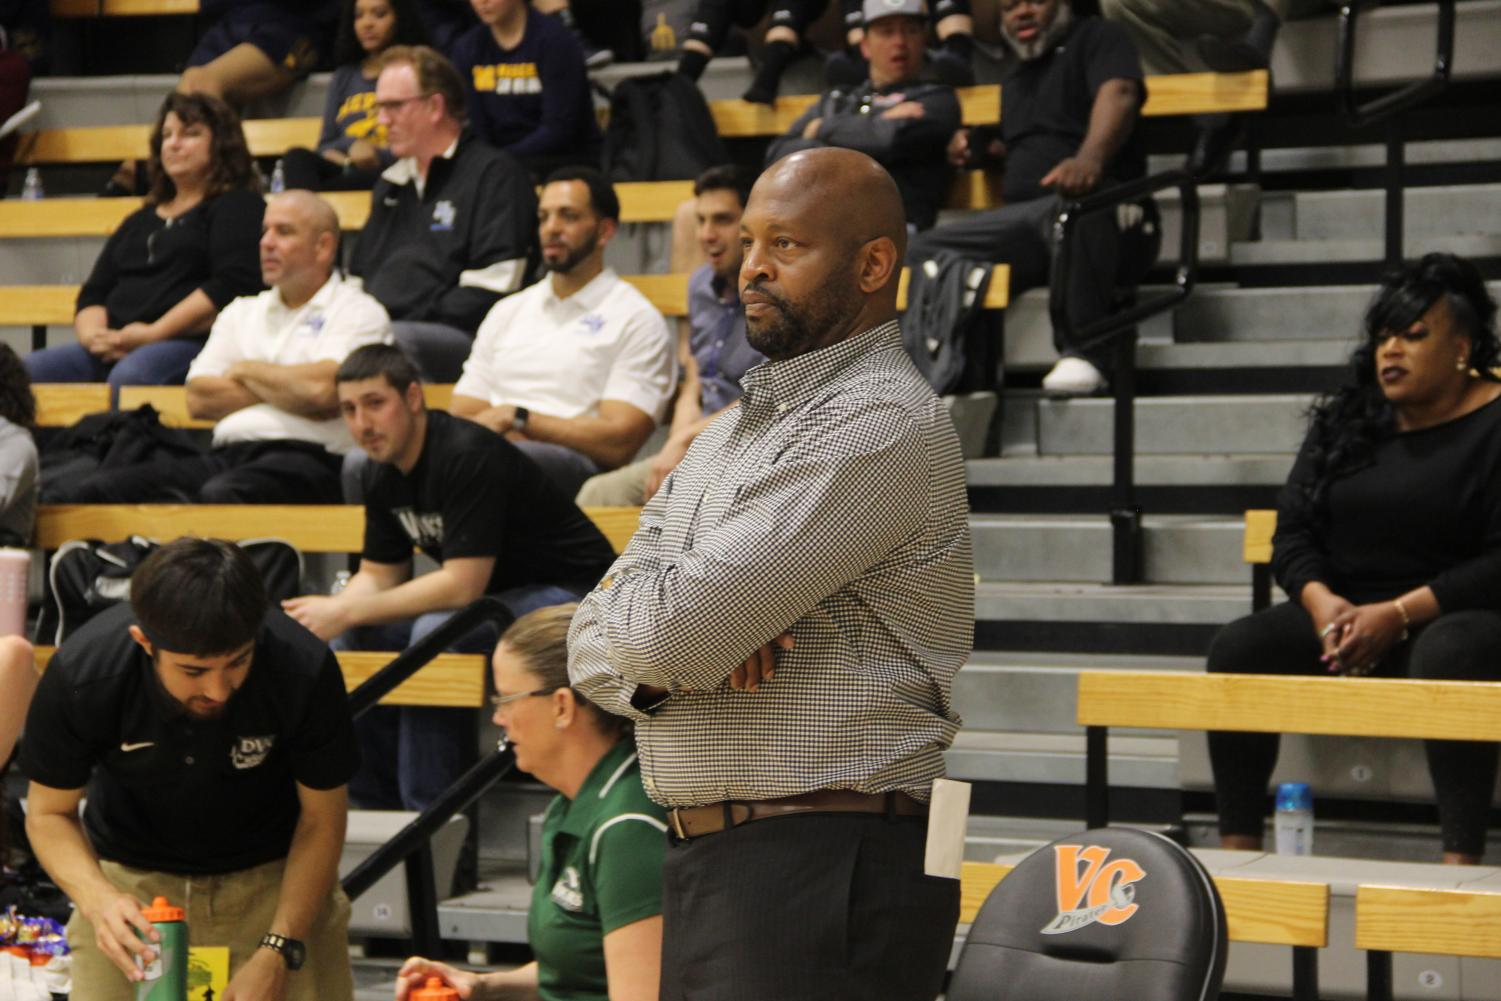 Coach Ramaundo Vaughn diligently watching his players during the Semi-Finals championship. (Alex Martin/The Inquirer).